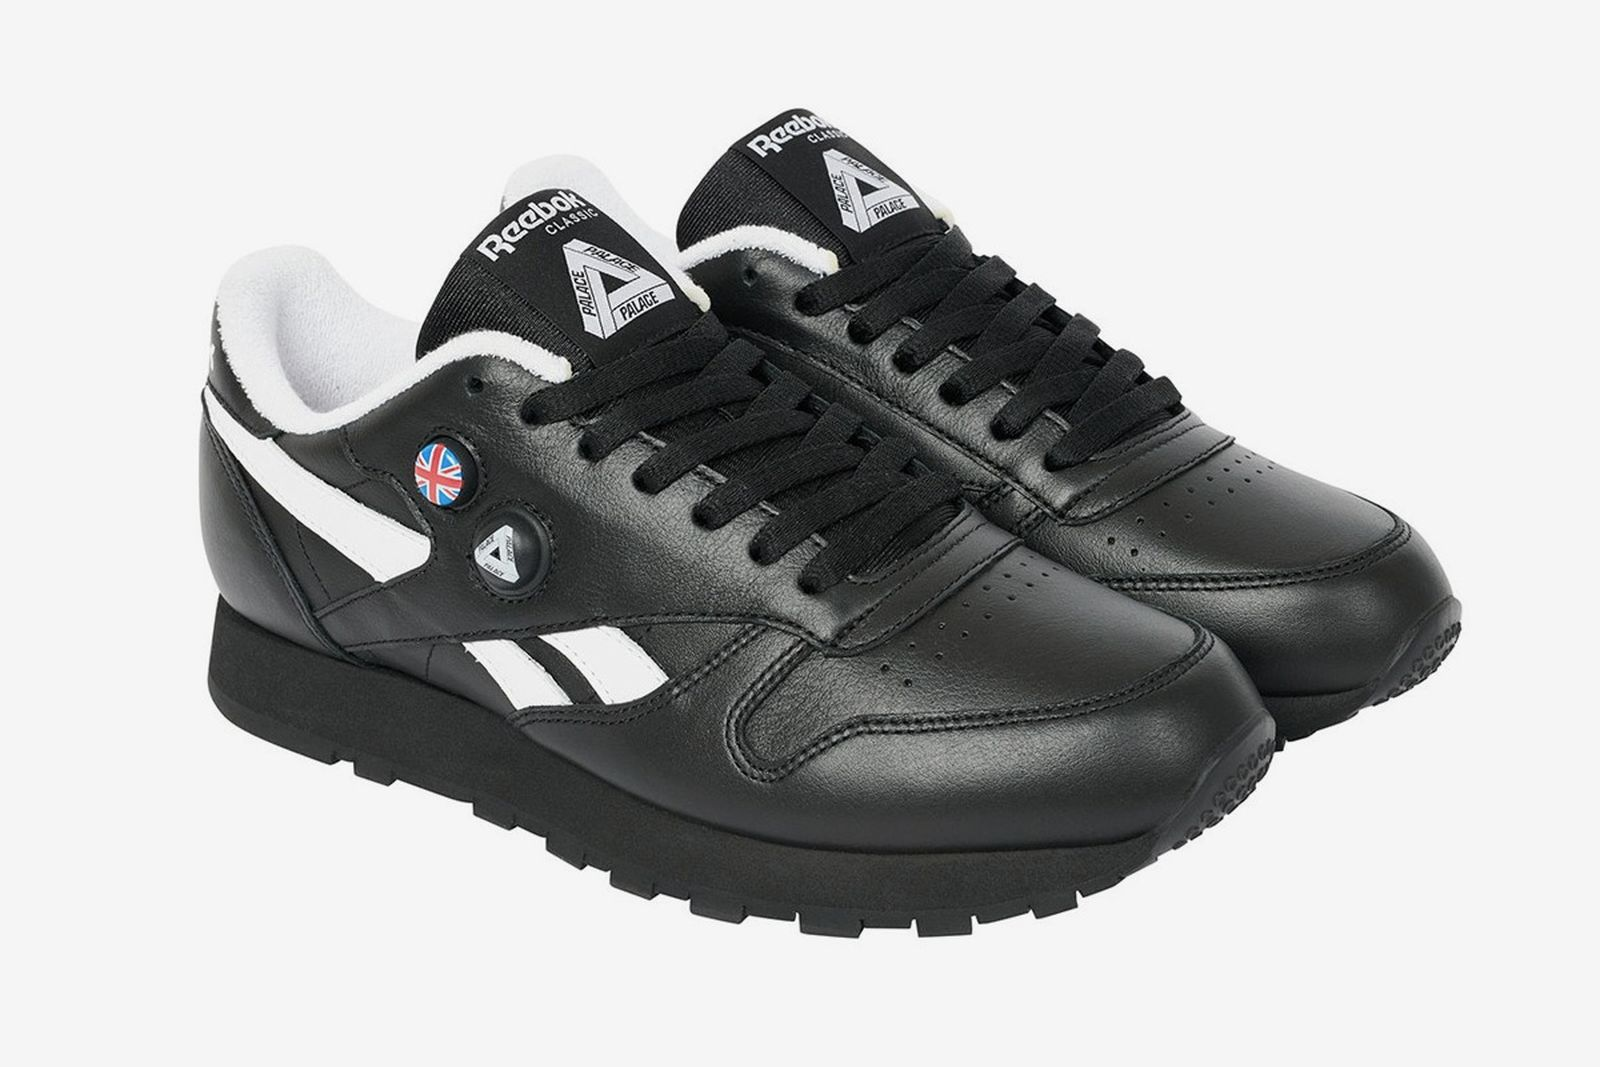 palace-reebok-classic-leather-pump-release-date-price-05